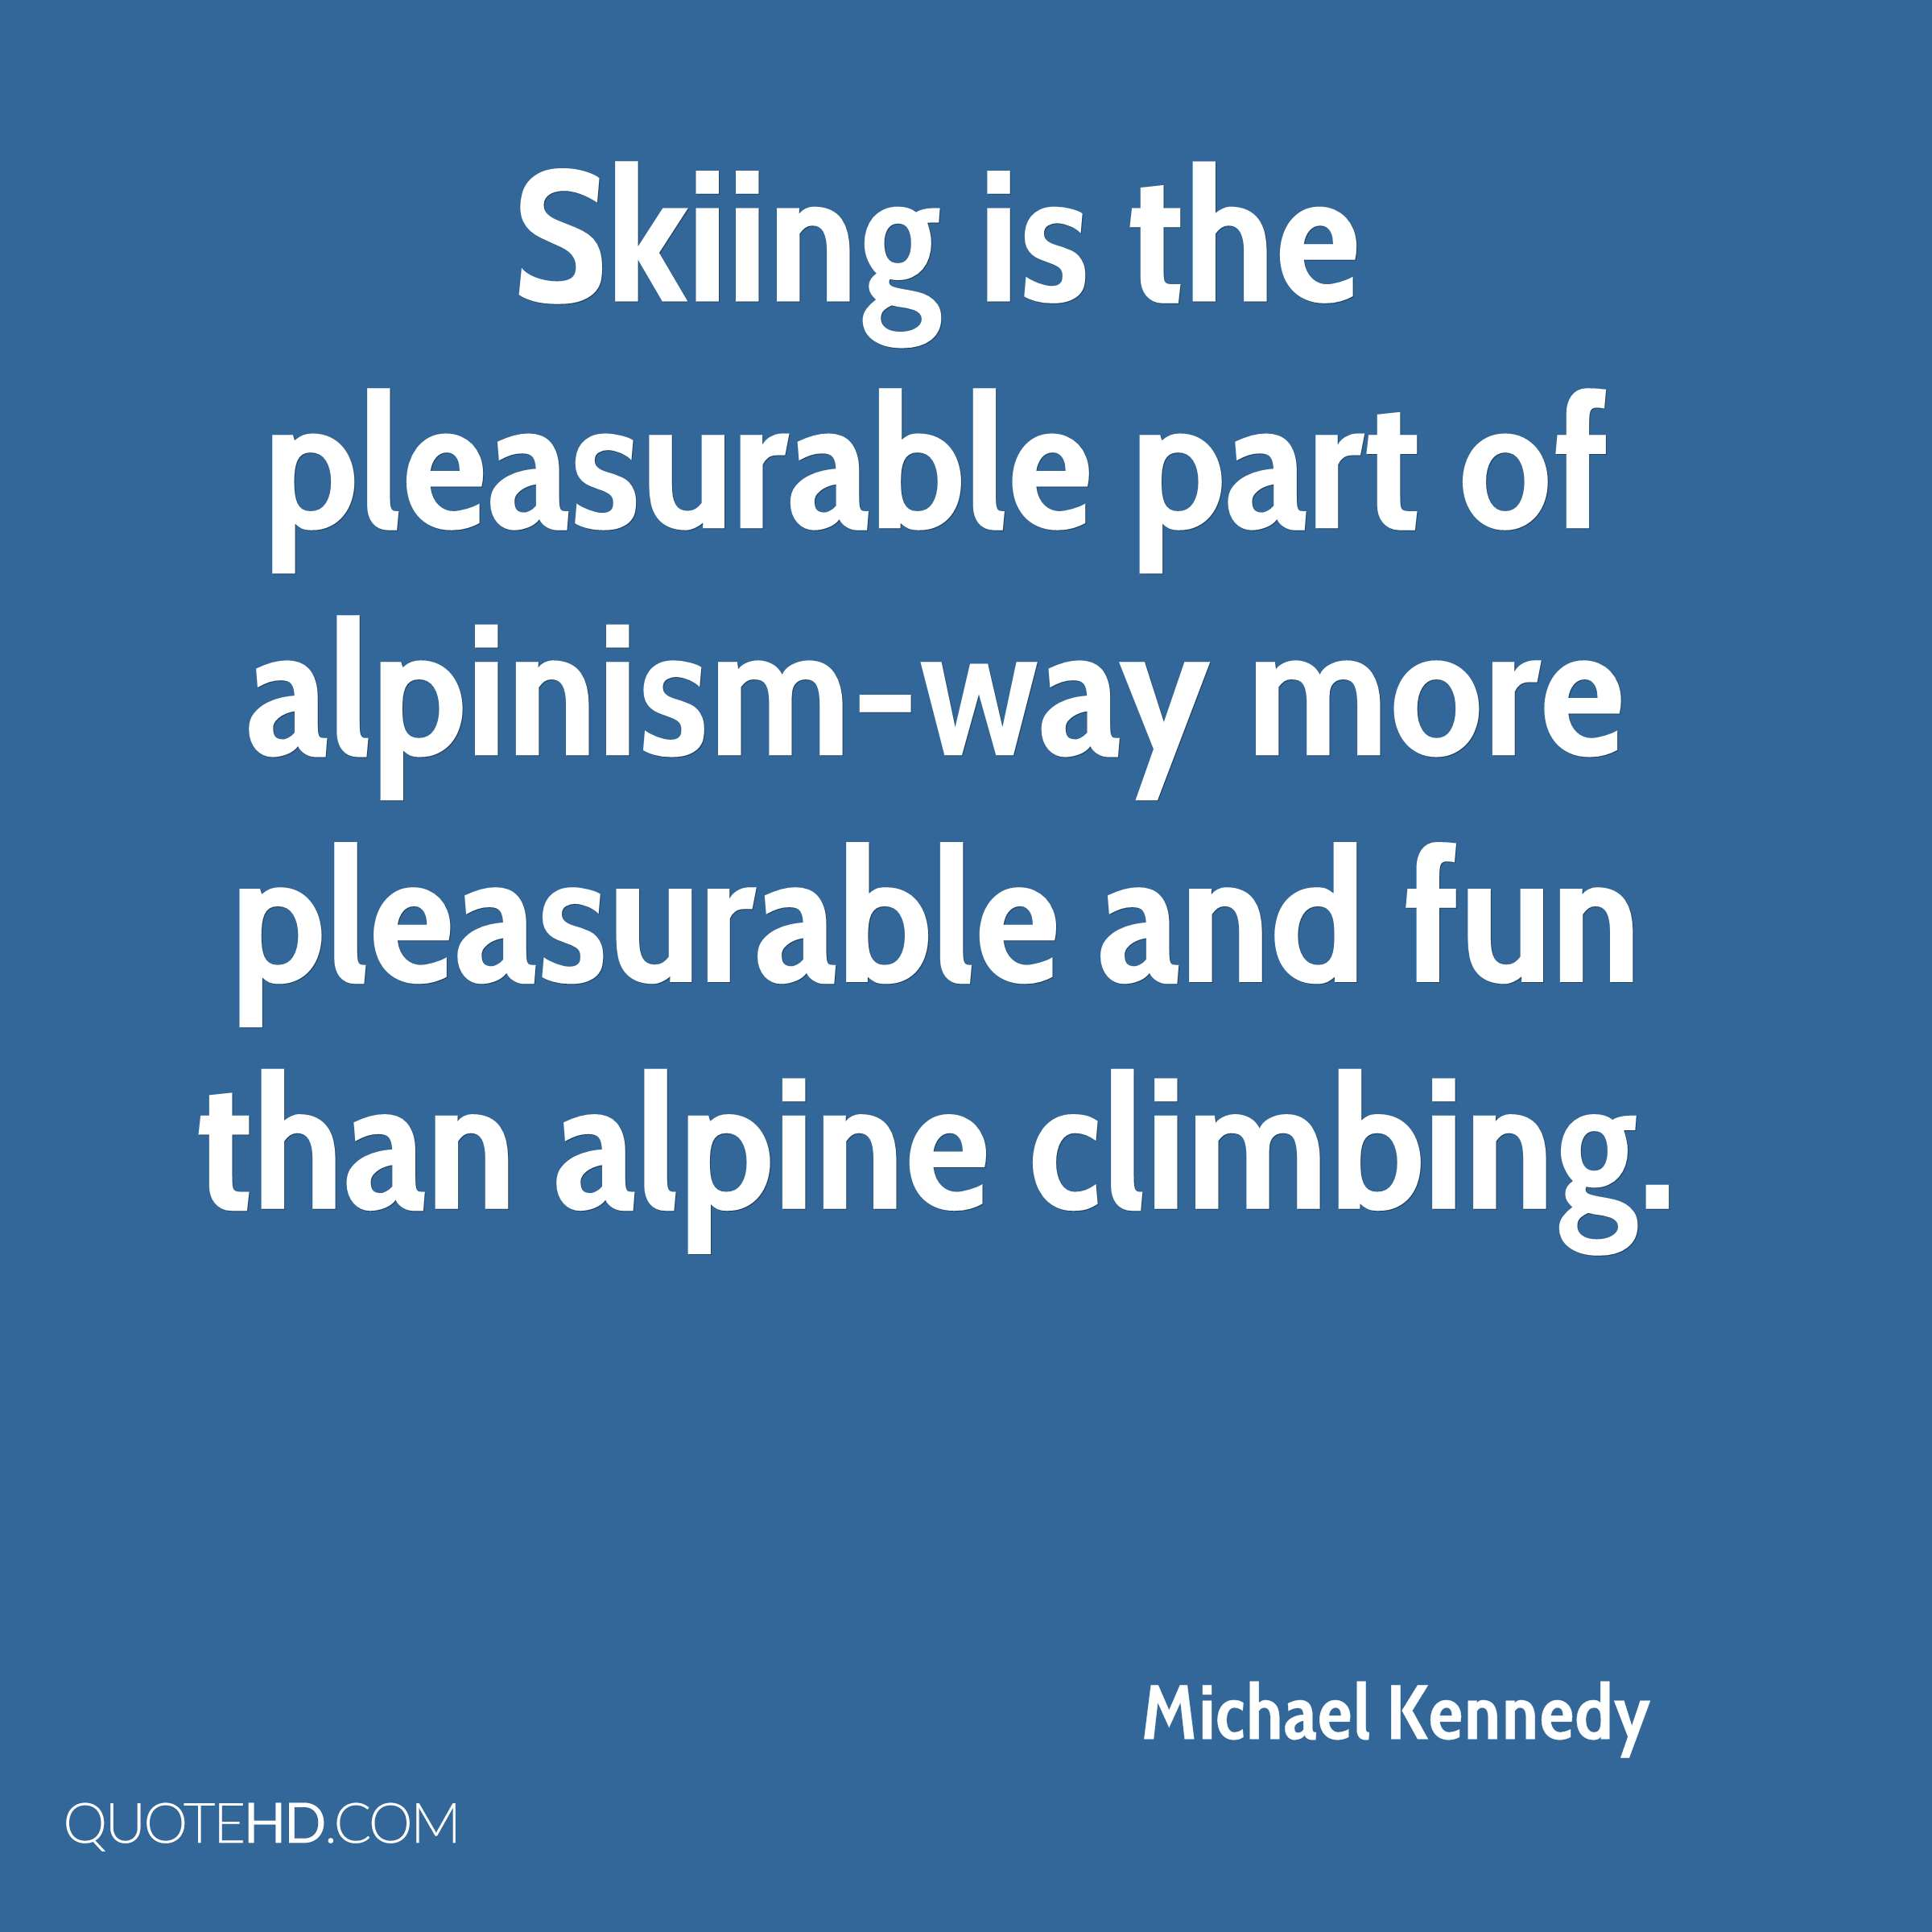 Skiing is the pleasurable part of alpinism-way more pleasurable and fun than alpine climbing.